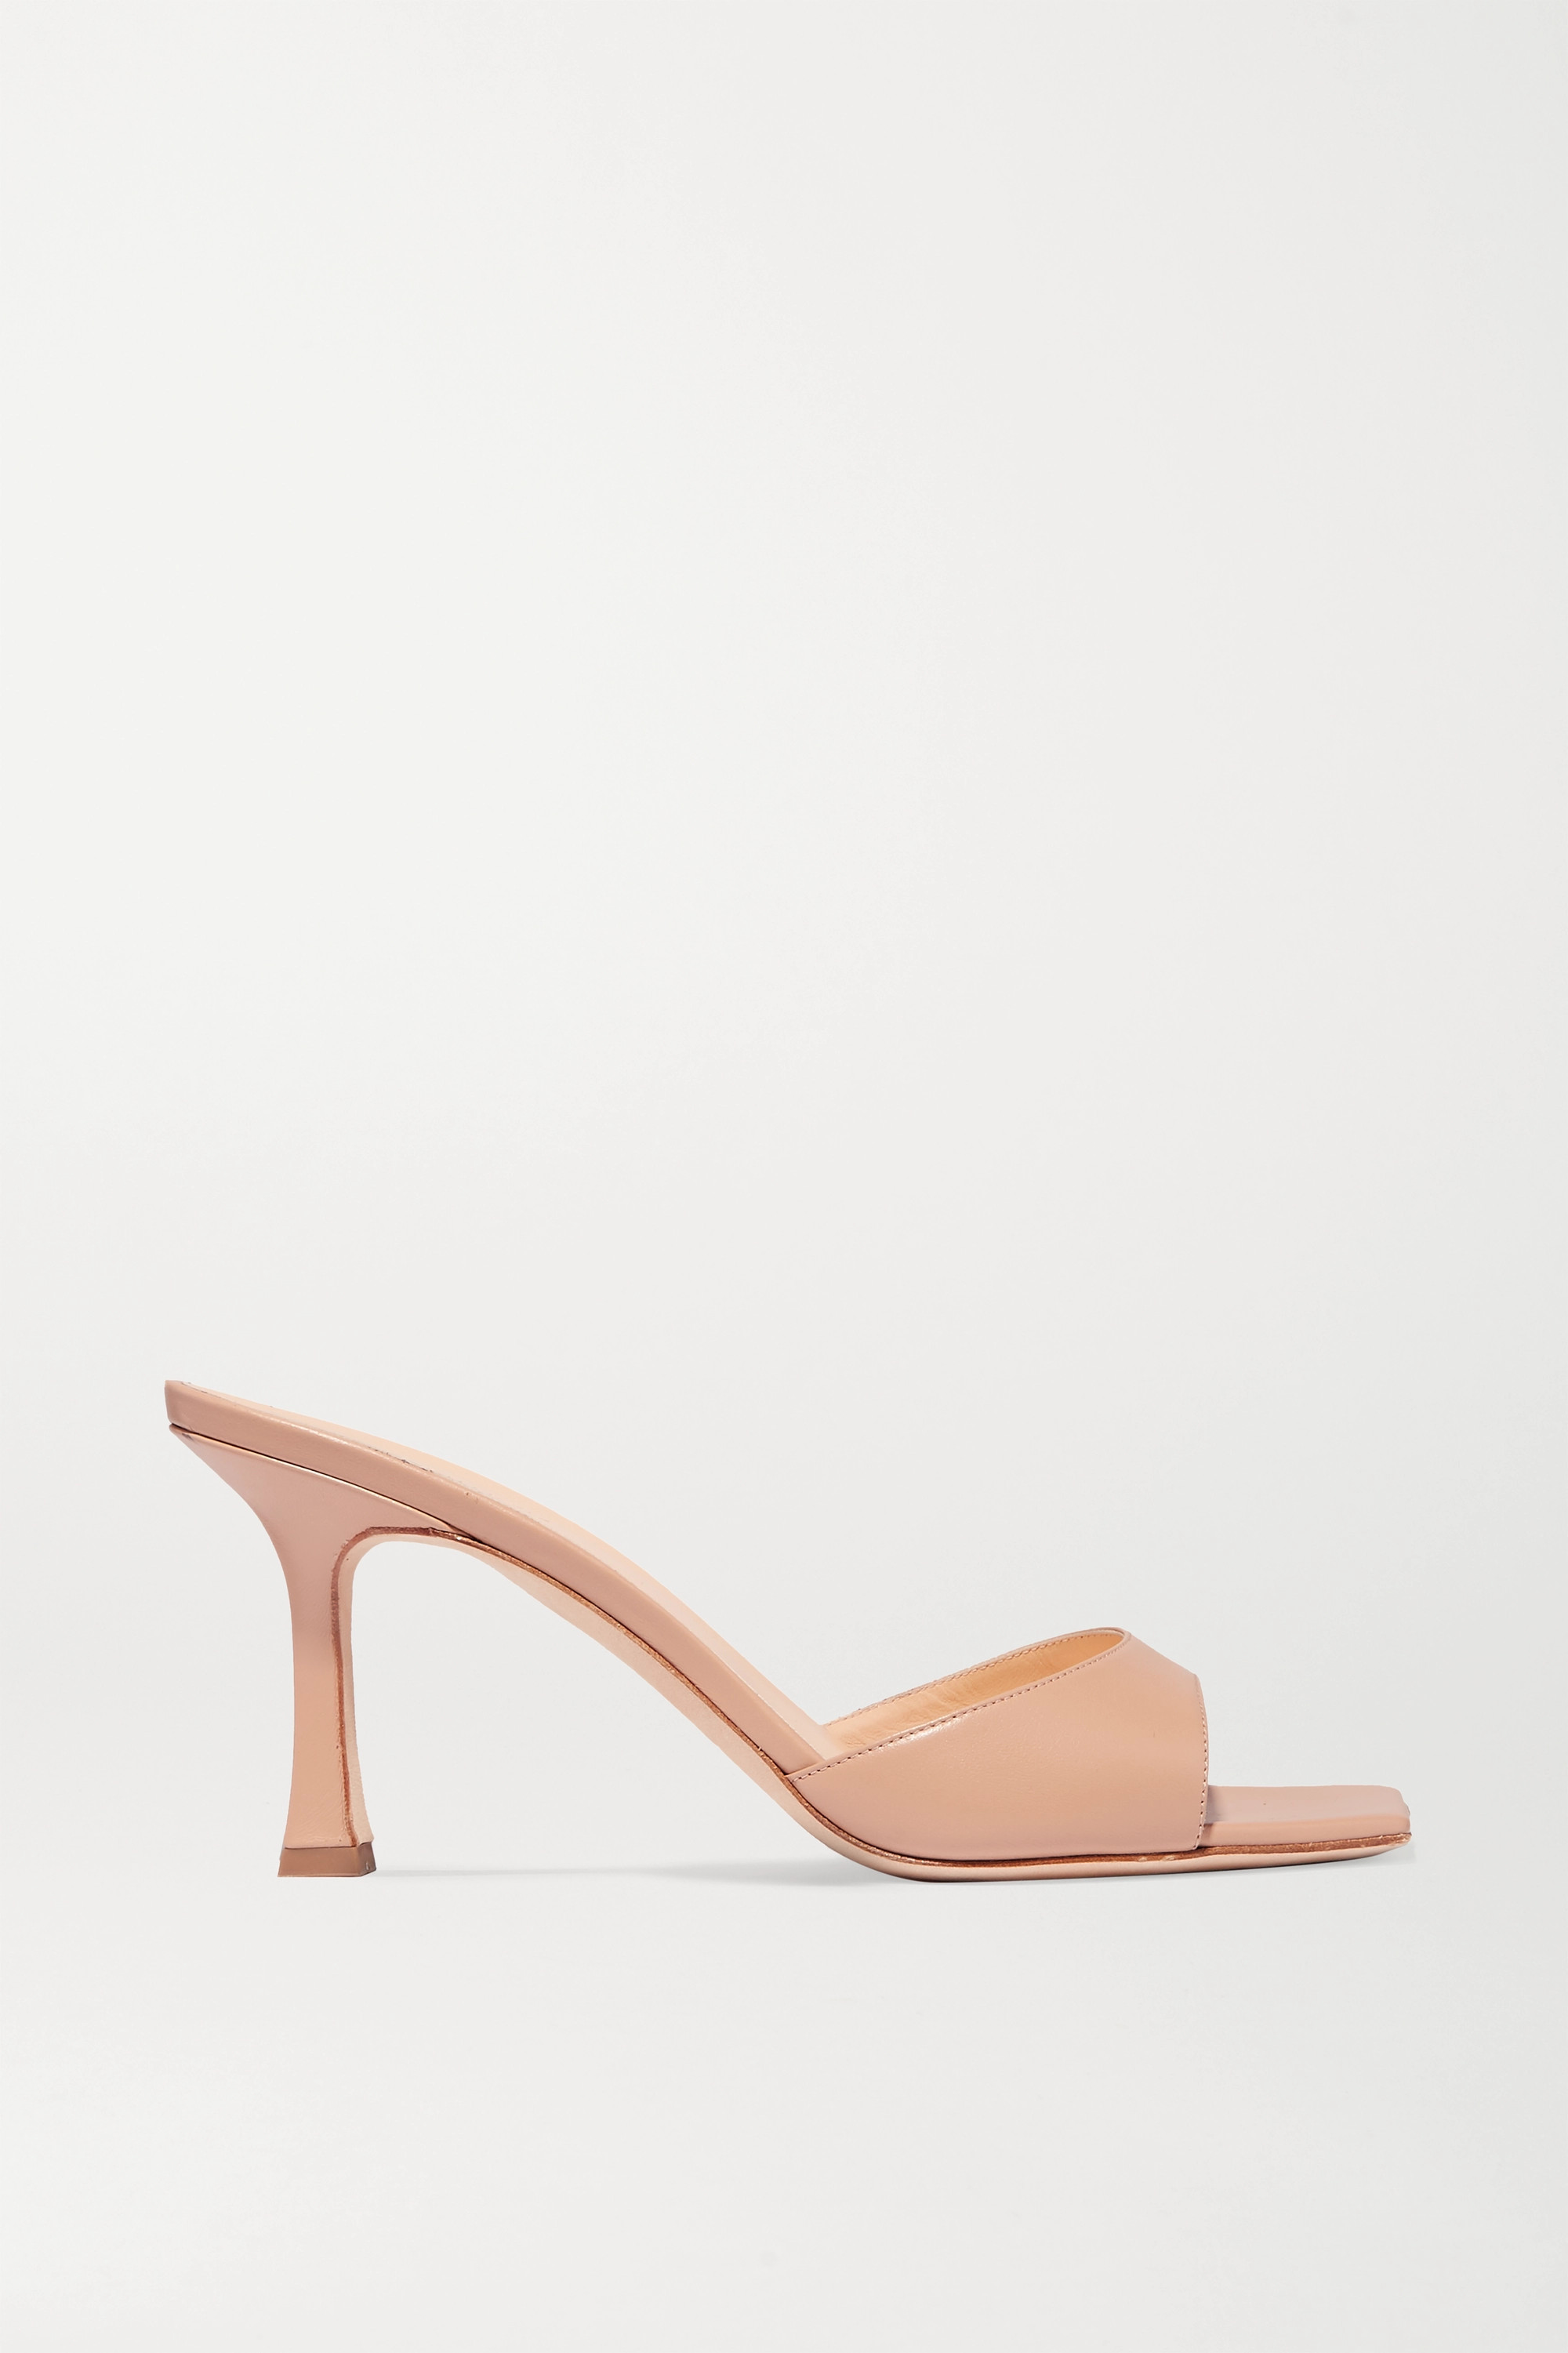 Estonia leather mules by MAGDA BUTRYM, available on net-a-porter.com for $620 Kendall Jenner Shoes Exact Product